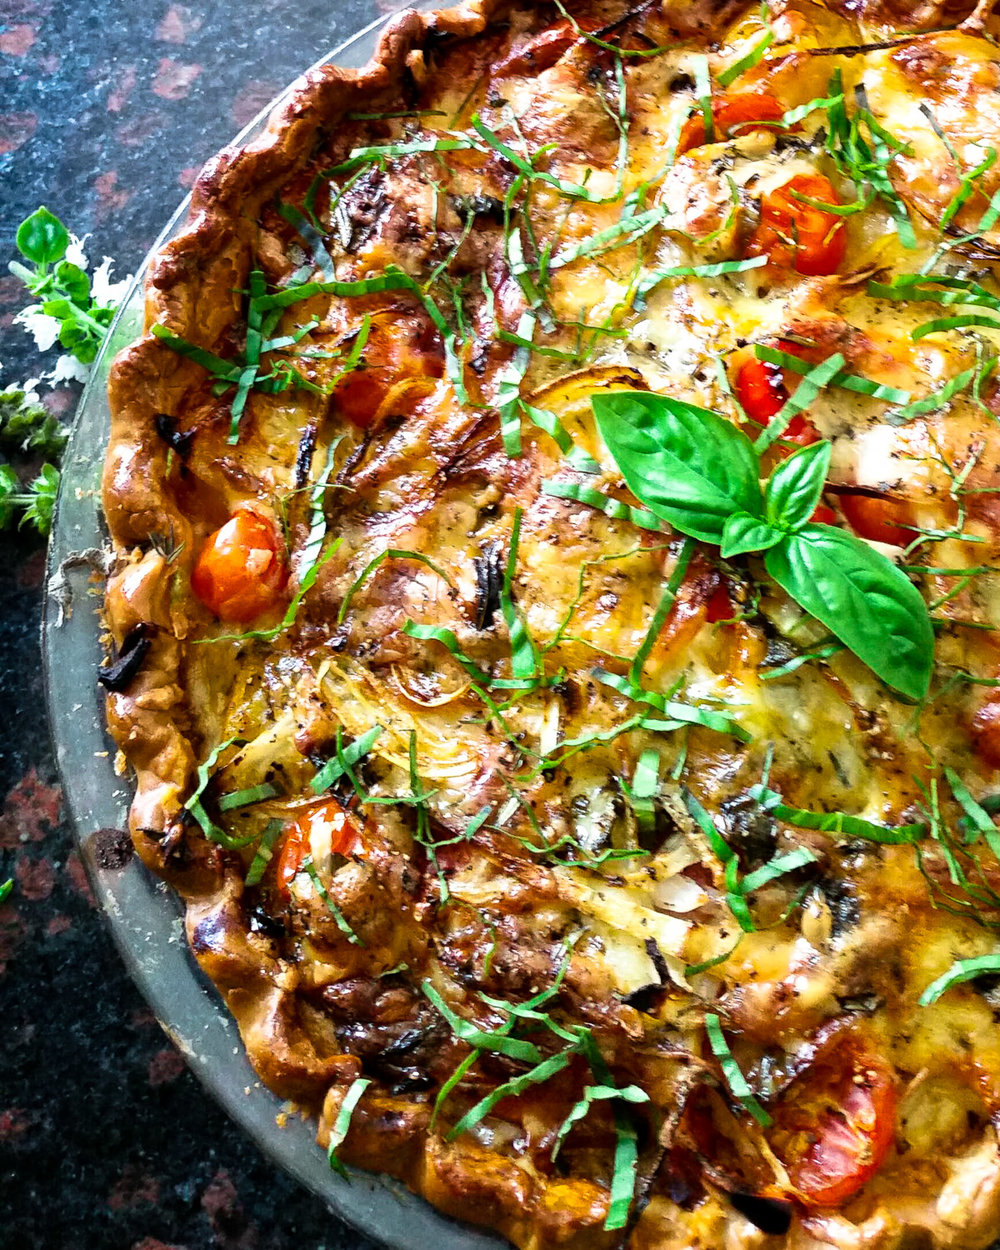 Summer Tomato and Herb Pie with peak-of-the-season tomatoes, fresh herbs and a golden crust.